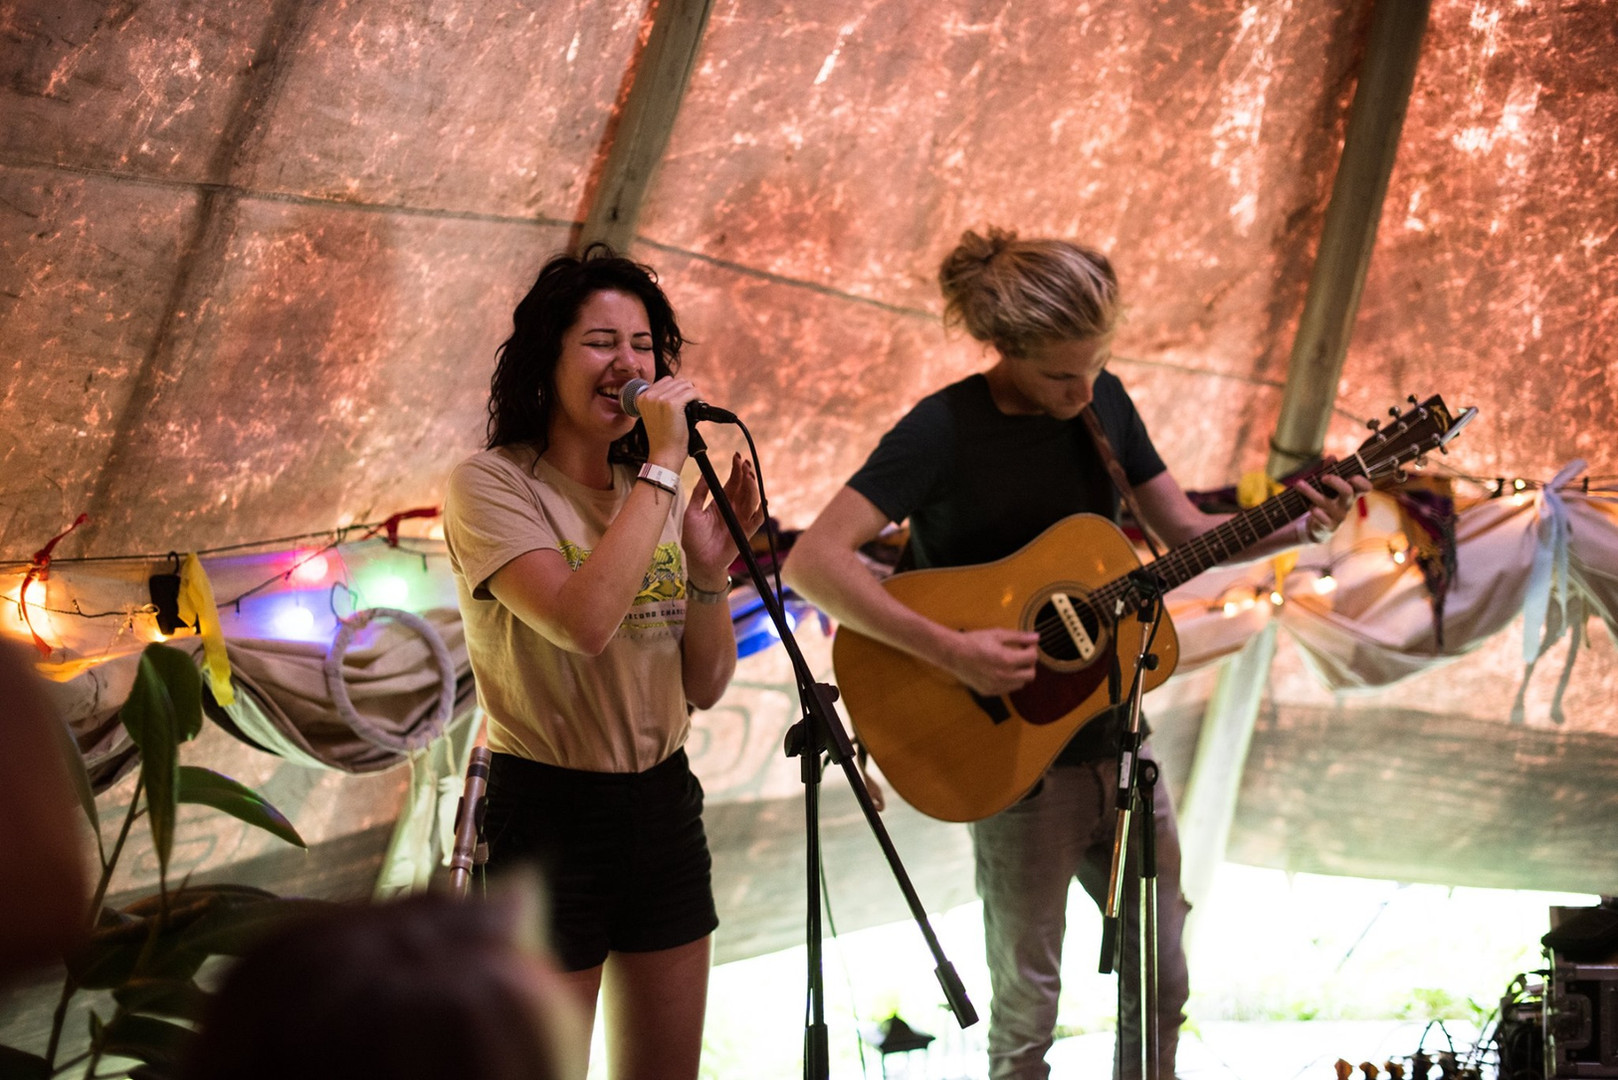 Mariëlle_Flens_performing_in_the_Tipi.j